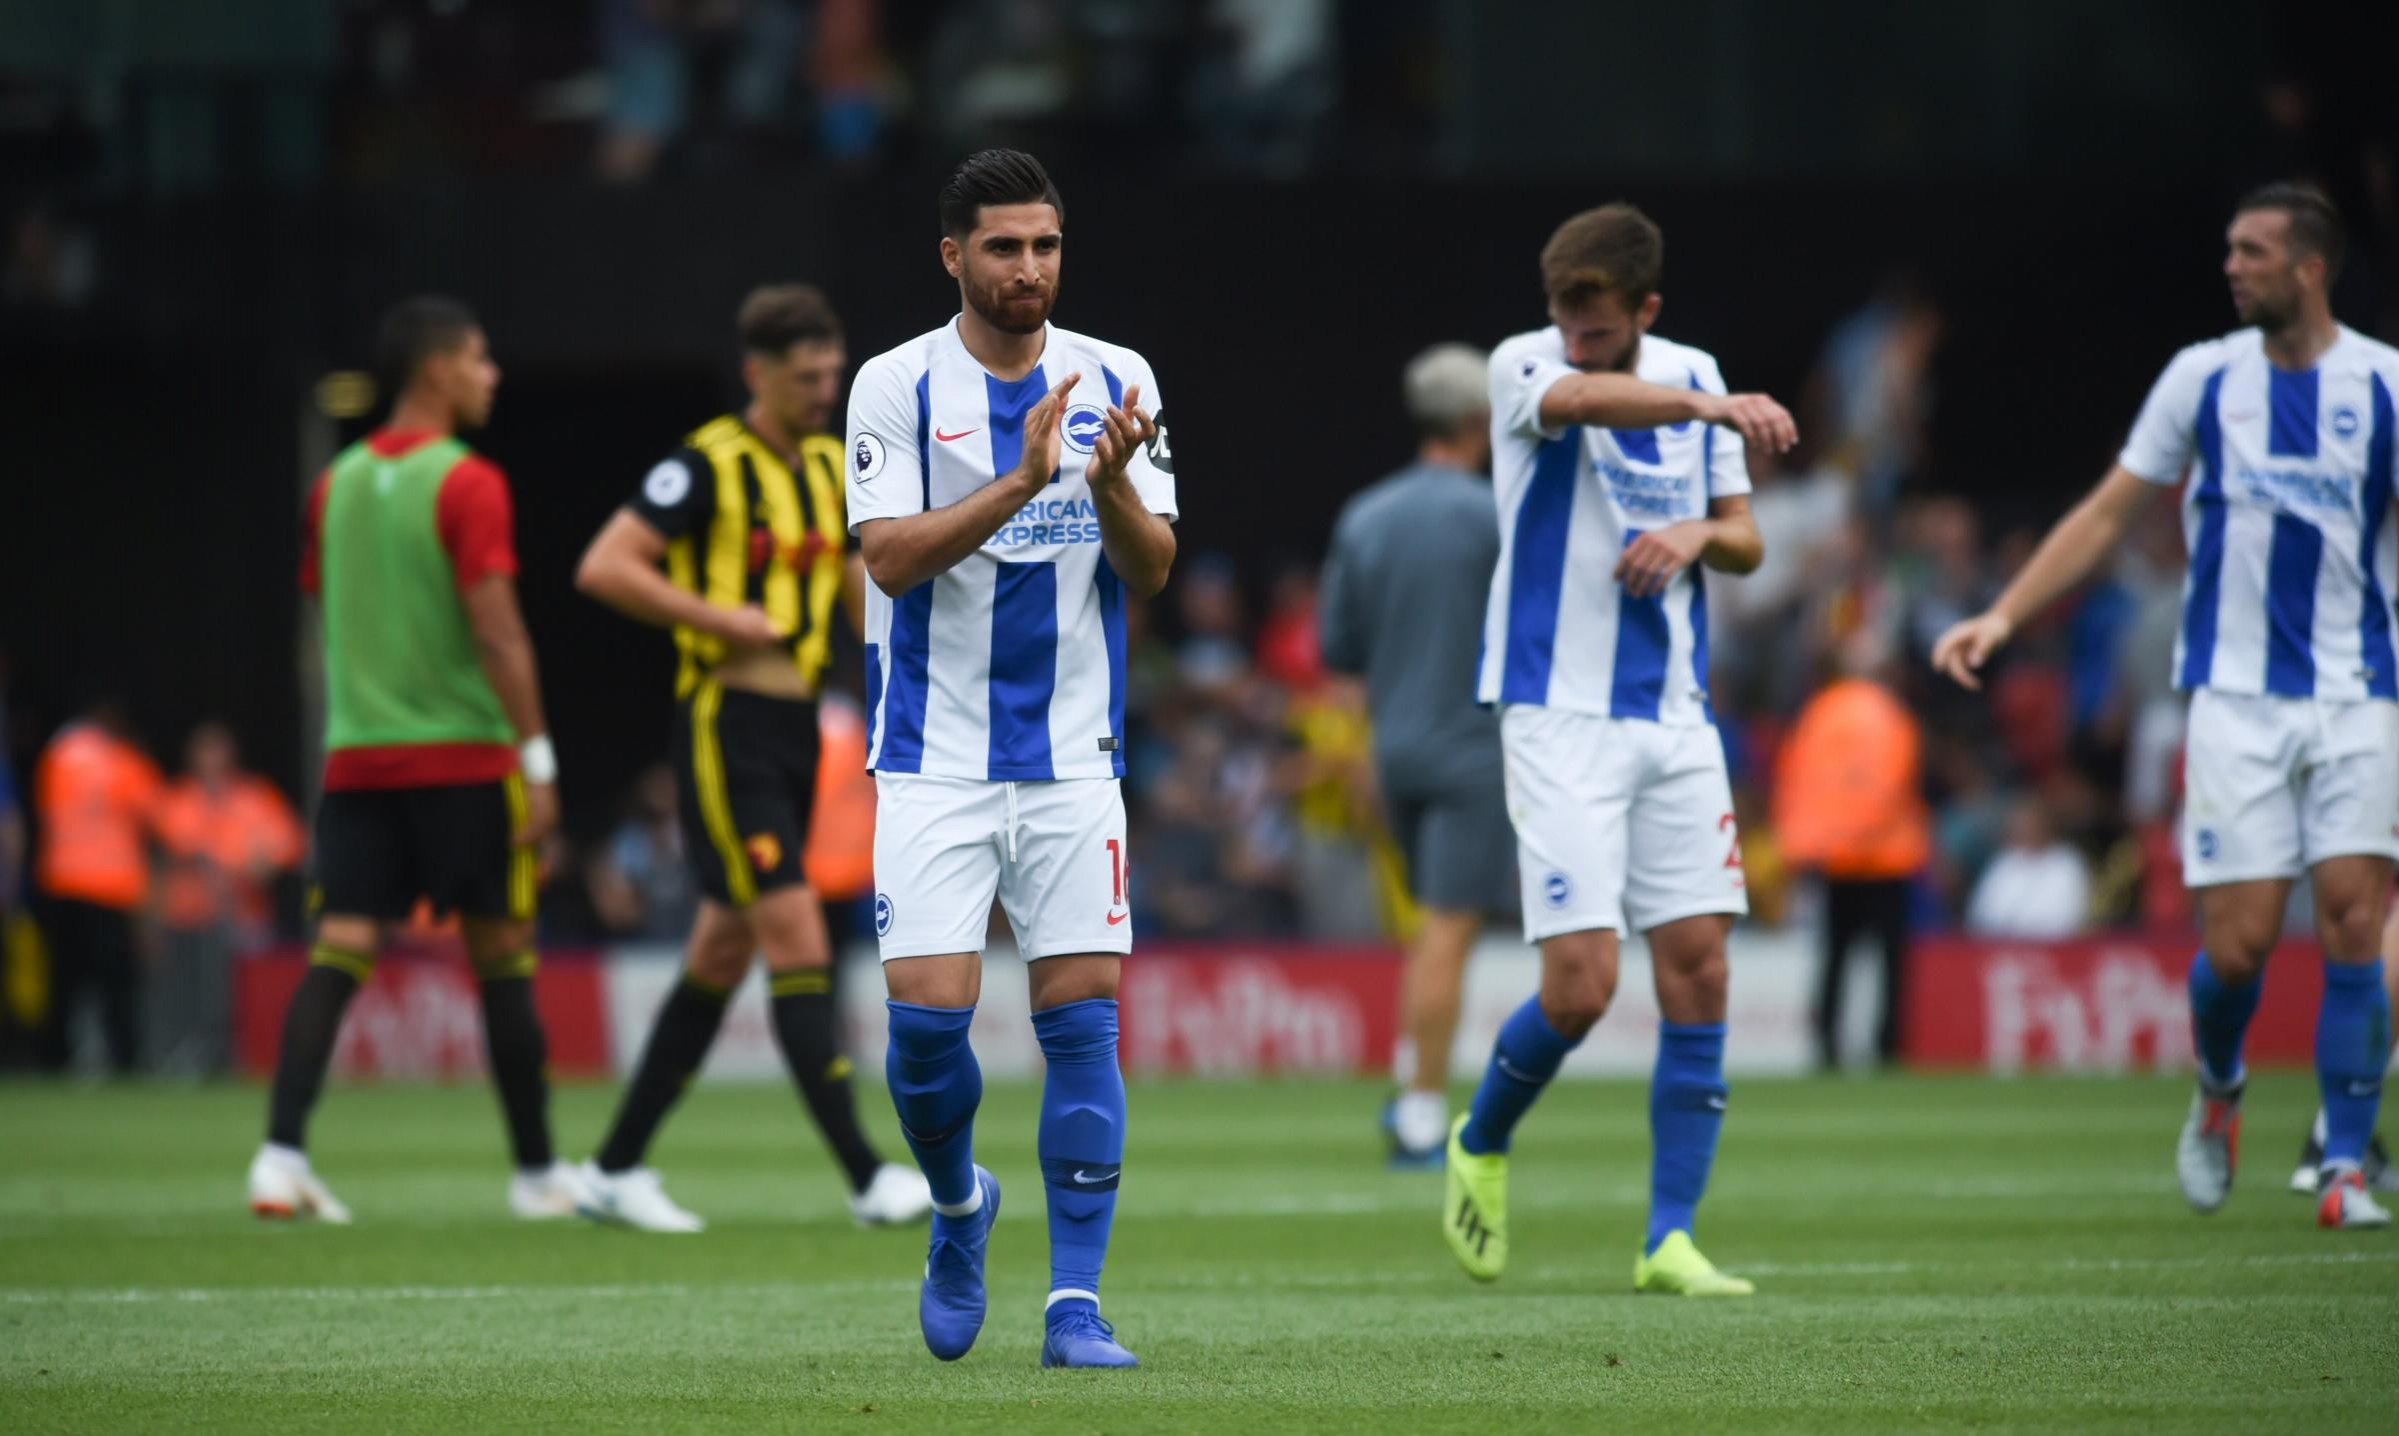 Alireza Jahanbakhsh applauds the Albion fans after defeat at Watford